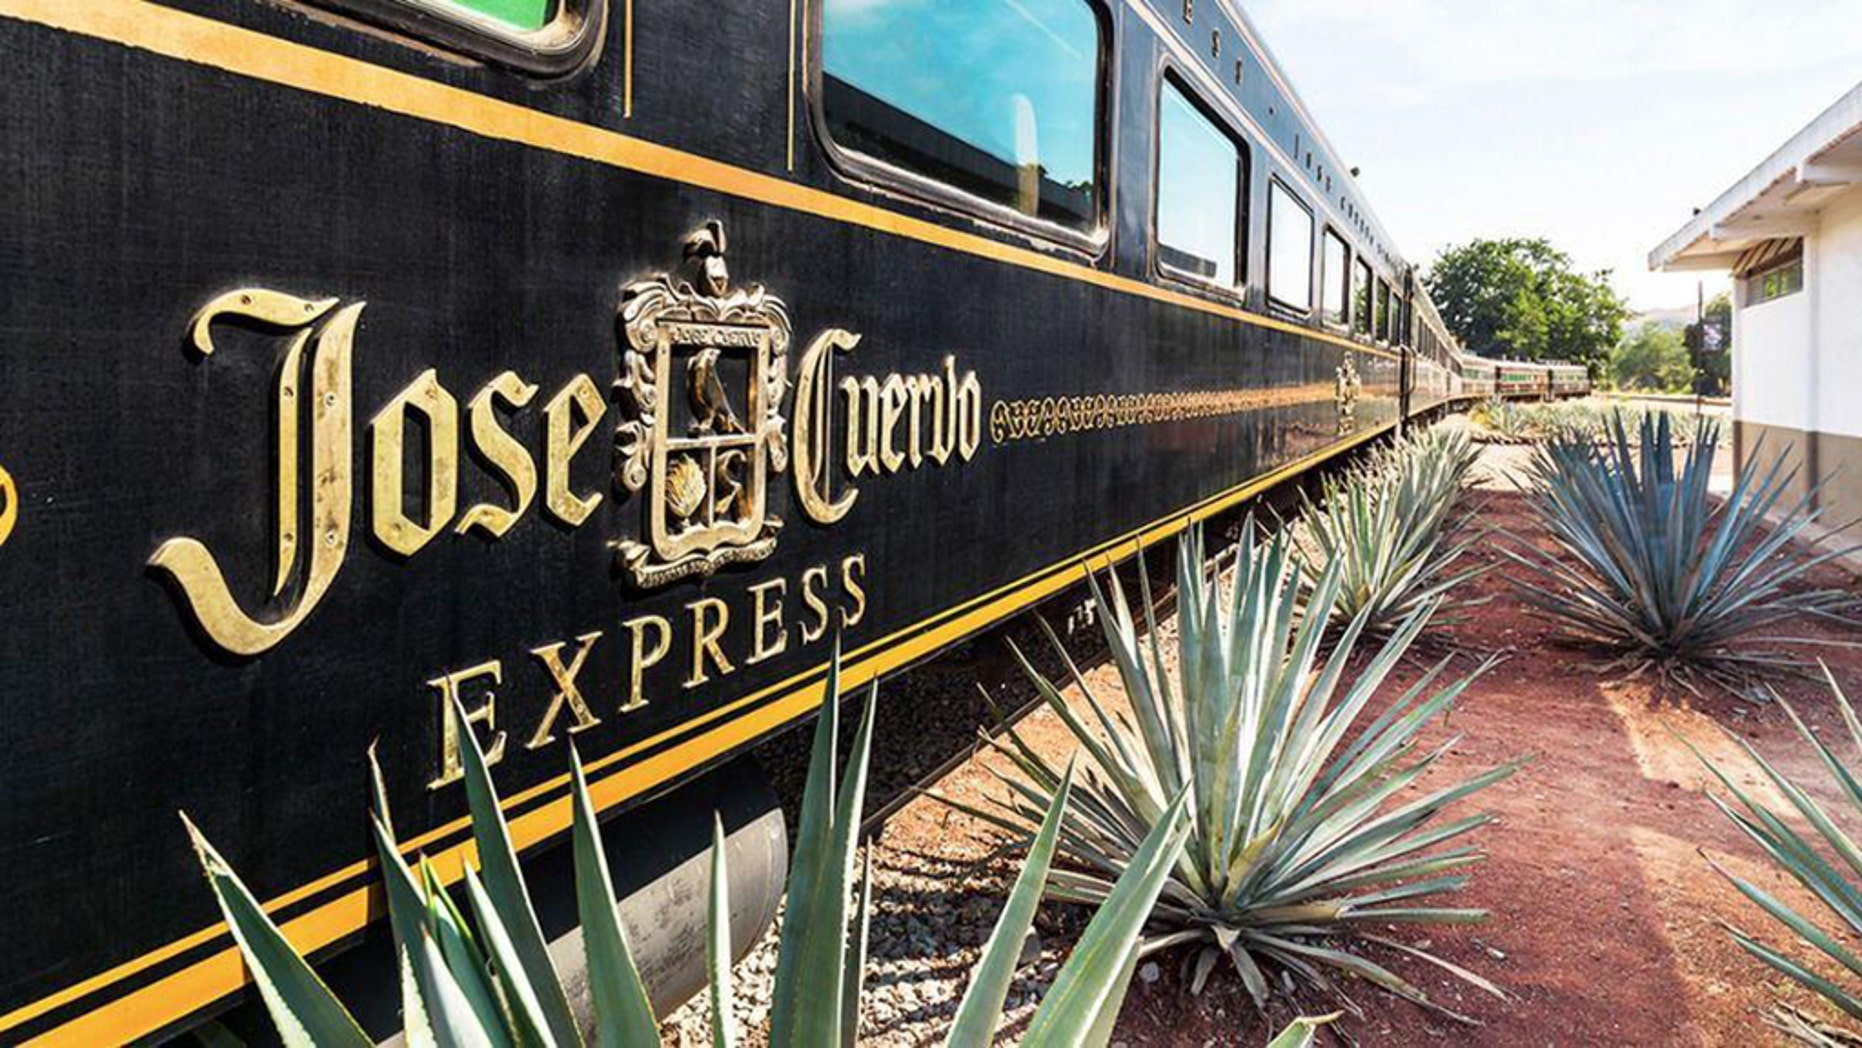 Tequila fans now have the chance to travel from Guadalajara to Tequila, Mexico on a vintage train while sipping an unlimited flow of the agave spirit.